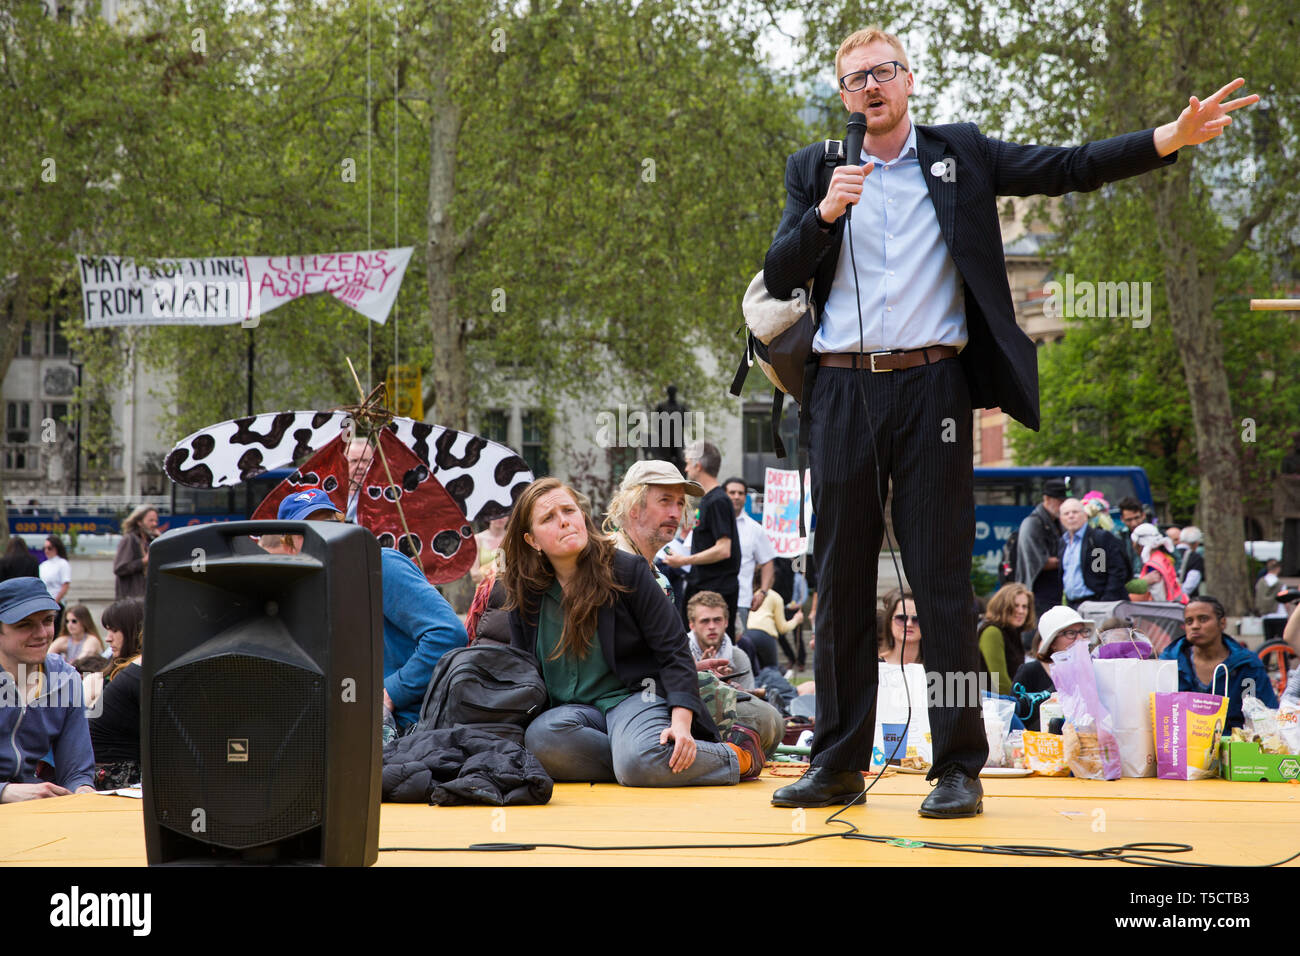 London, UK. 23rd April 2019. Lloyd Russell-Moyle, Labour MP for Brighton Kemptown, addresses climate change activists from Extinction Rebellion at an assembly in Parliament Square prior to an attempt to deliver to Parliament activists' letters requesting meetings to discuss climate change with their Members of Parliament. Credit: Mark Kerrison/Alamy Live News - Stock Image